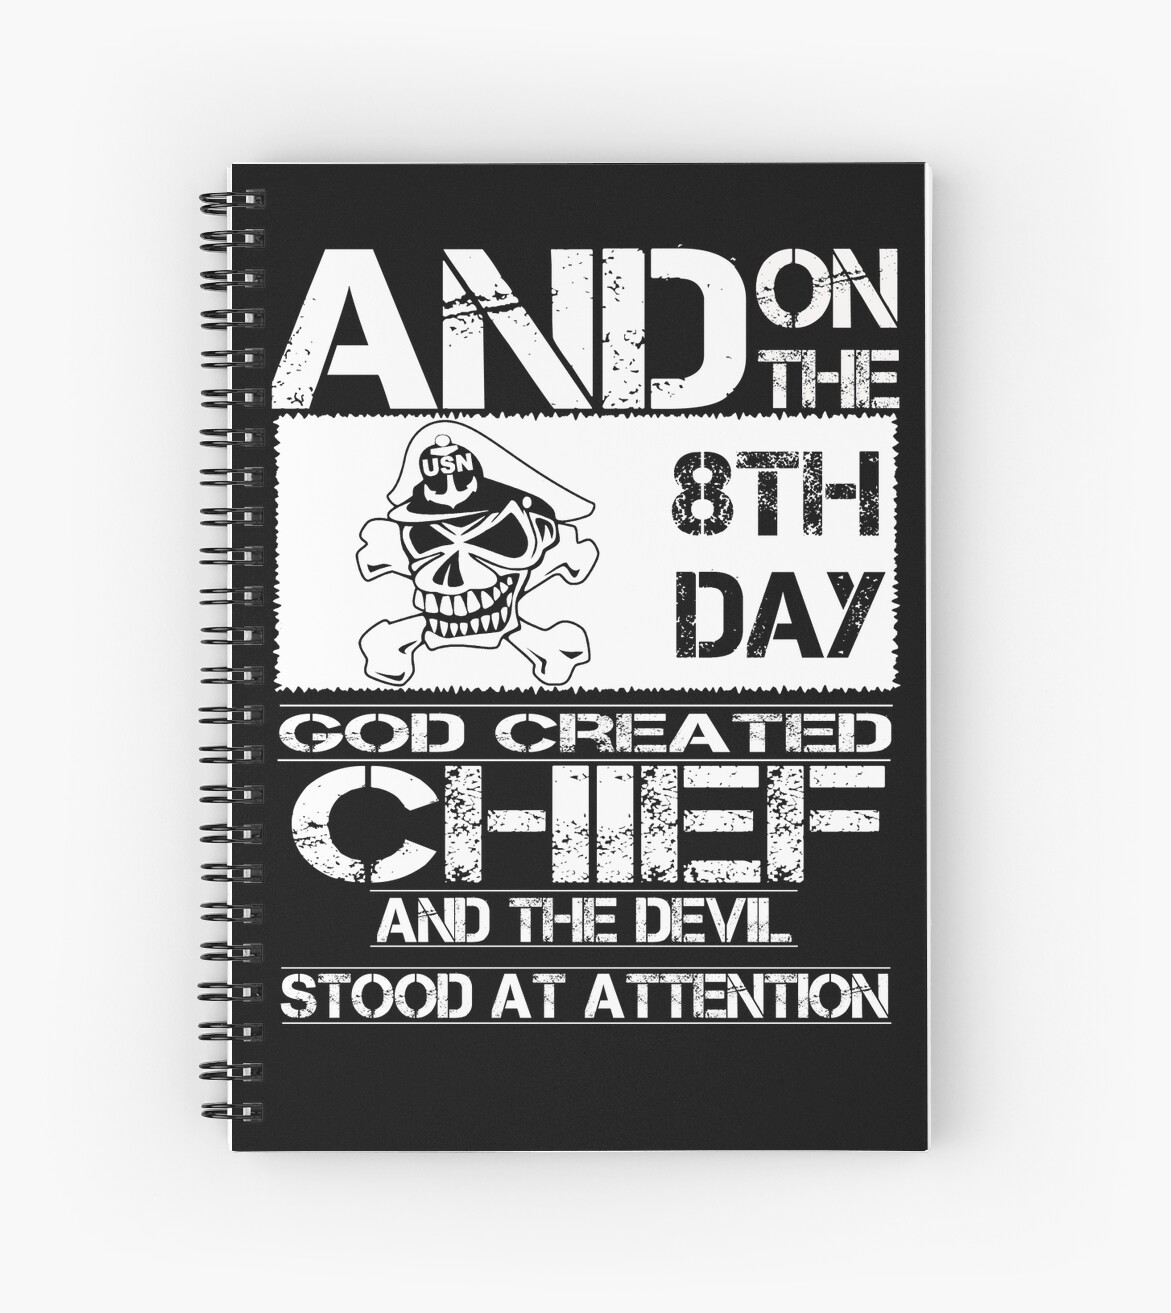 Sailor navy chief warrant officer Navy Corpsman navy chief wife navy c by lnet